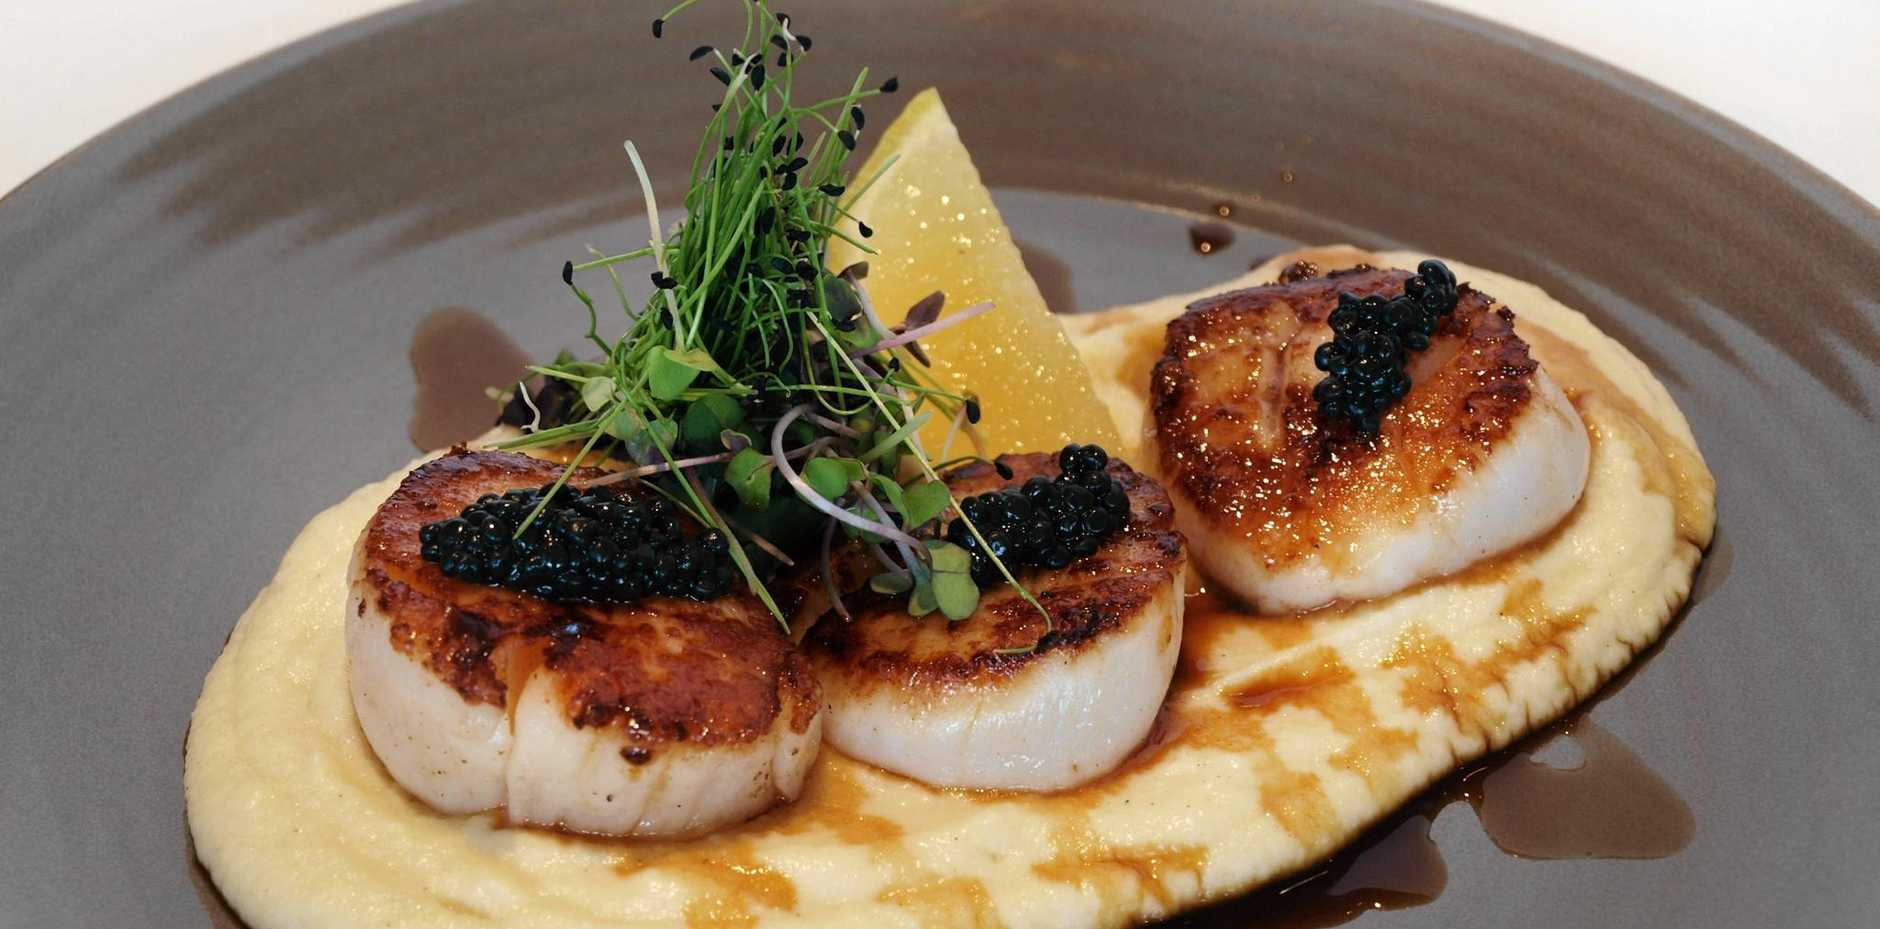 Scallops, a local favourite, are in short supply forcing prices to skyrocket.